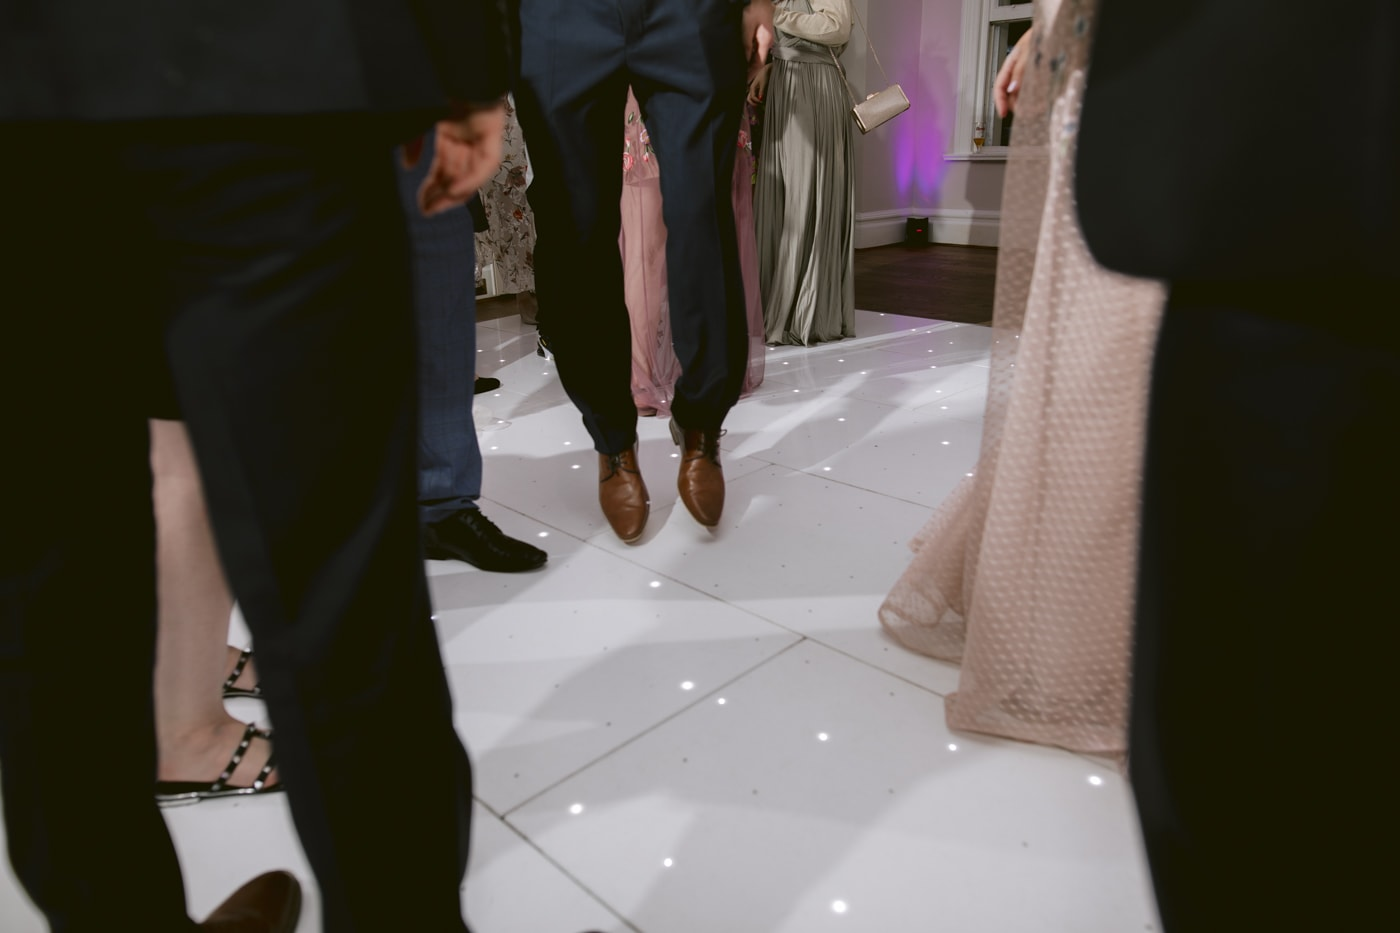 Guests Happy Feet Dancing Together at Storrs Hall Wedding